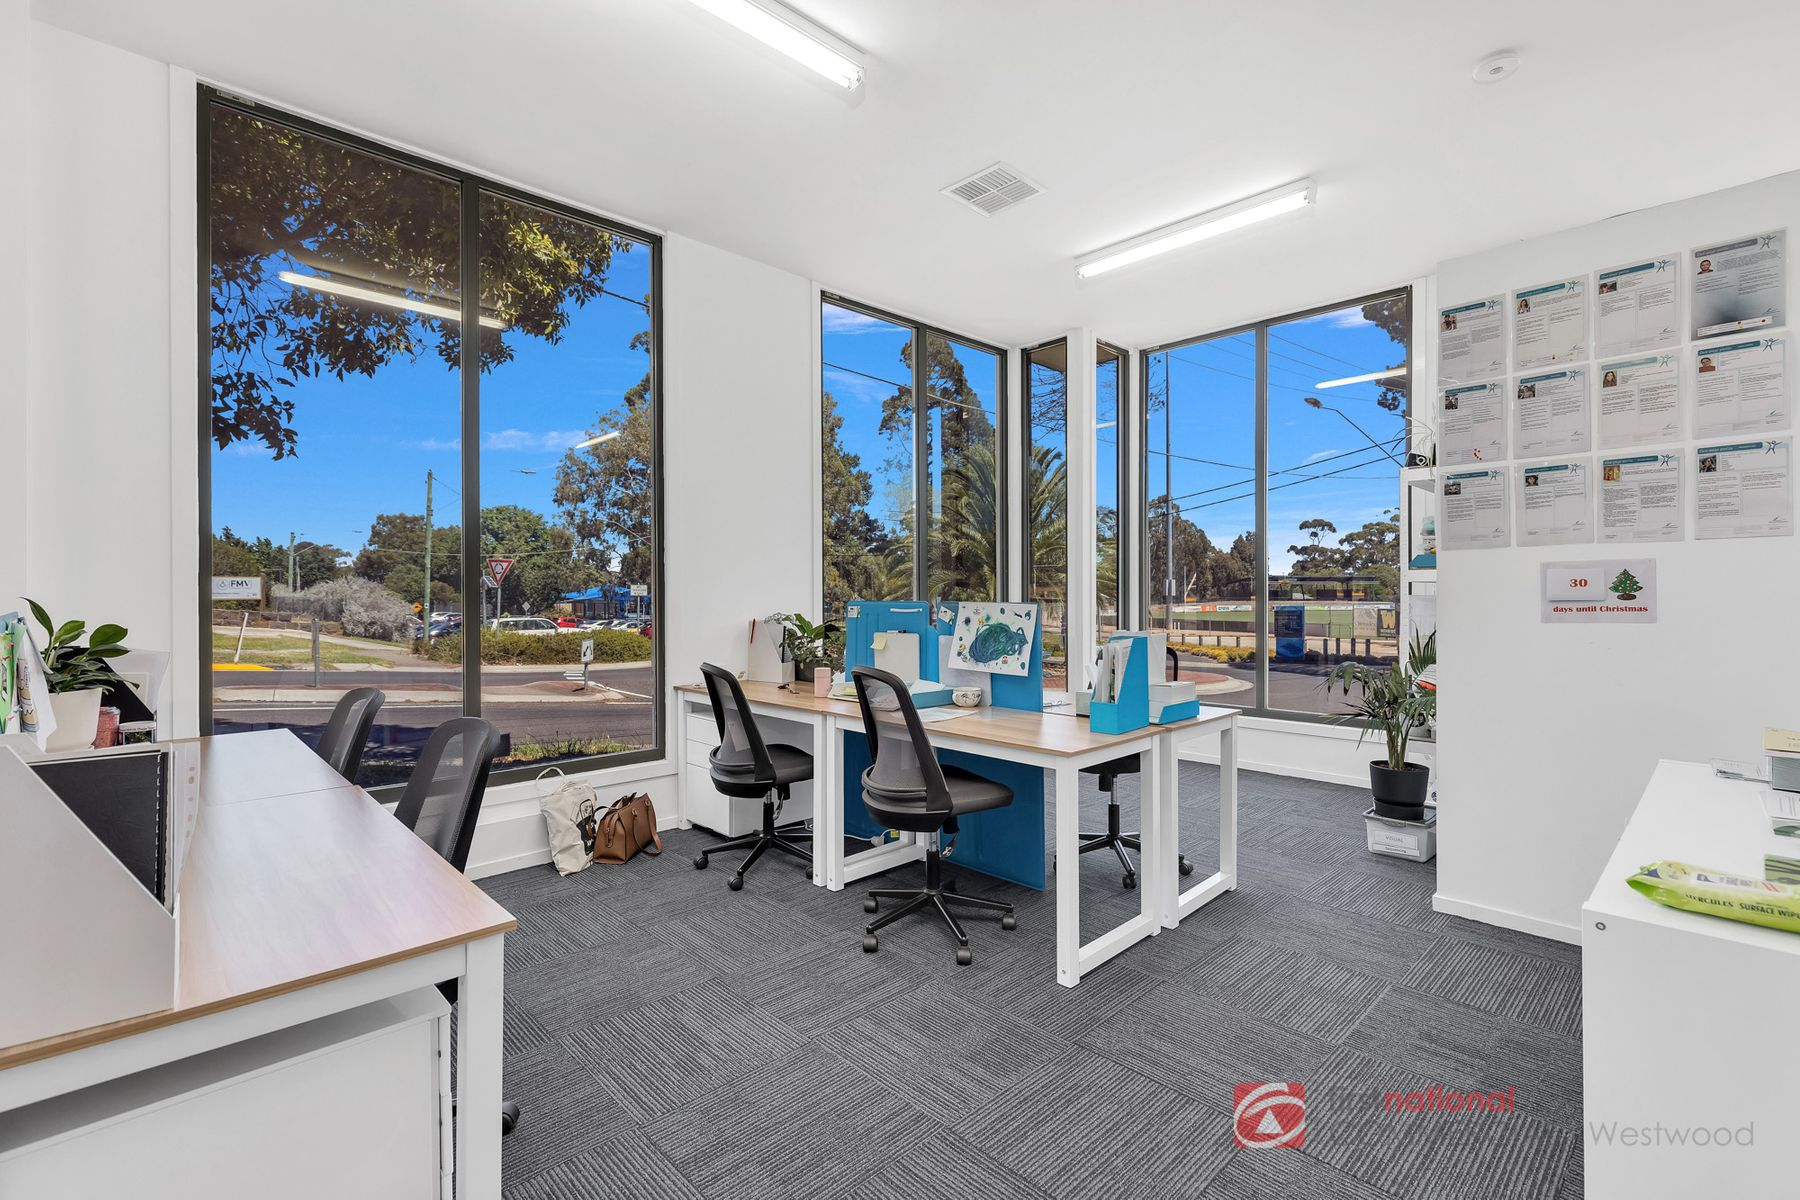 1/221 Watton Street, Werribee, VIC 3030